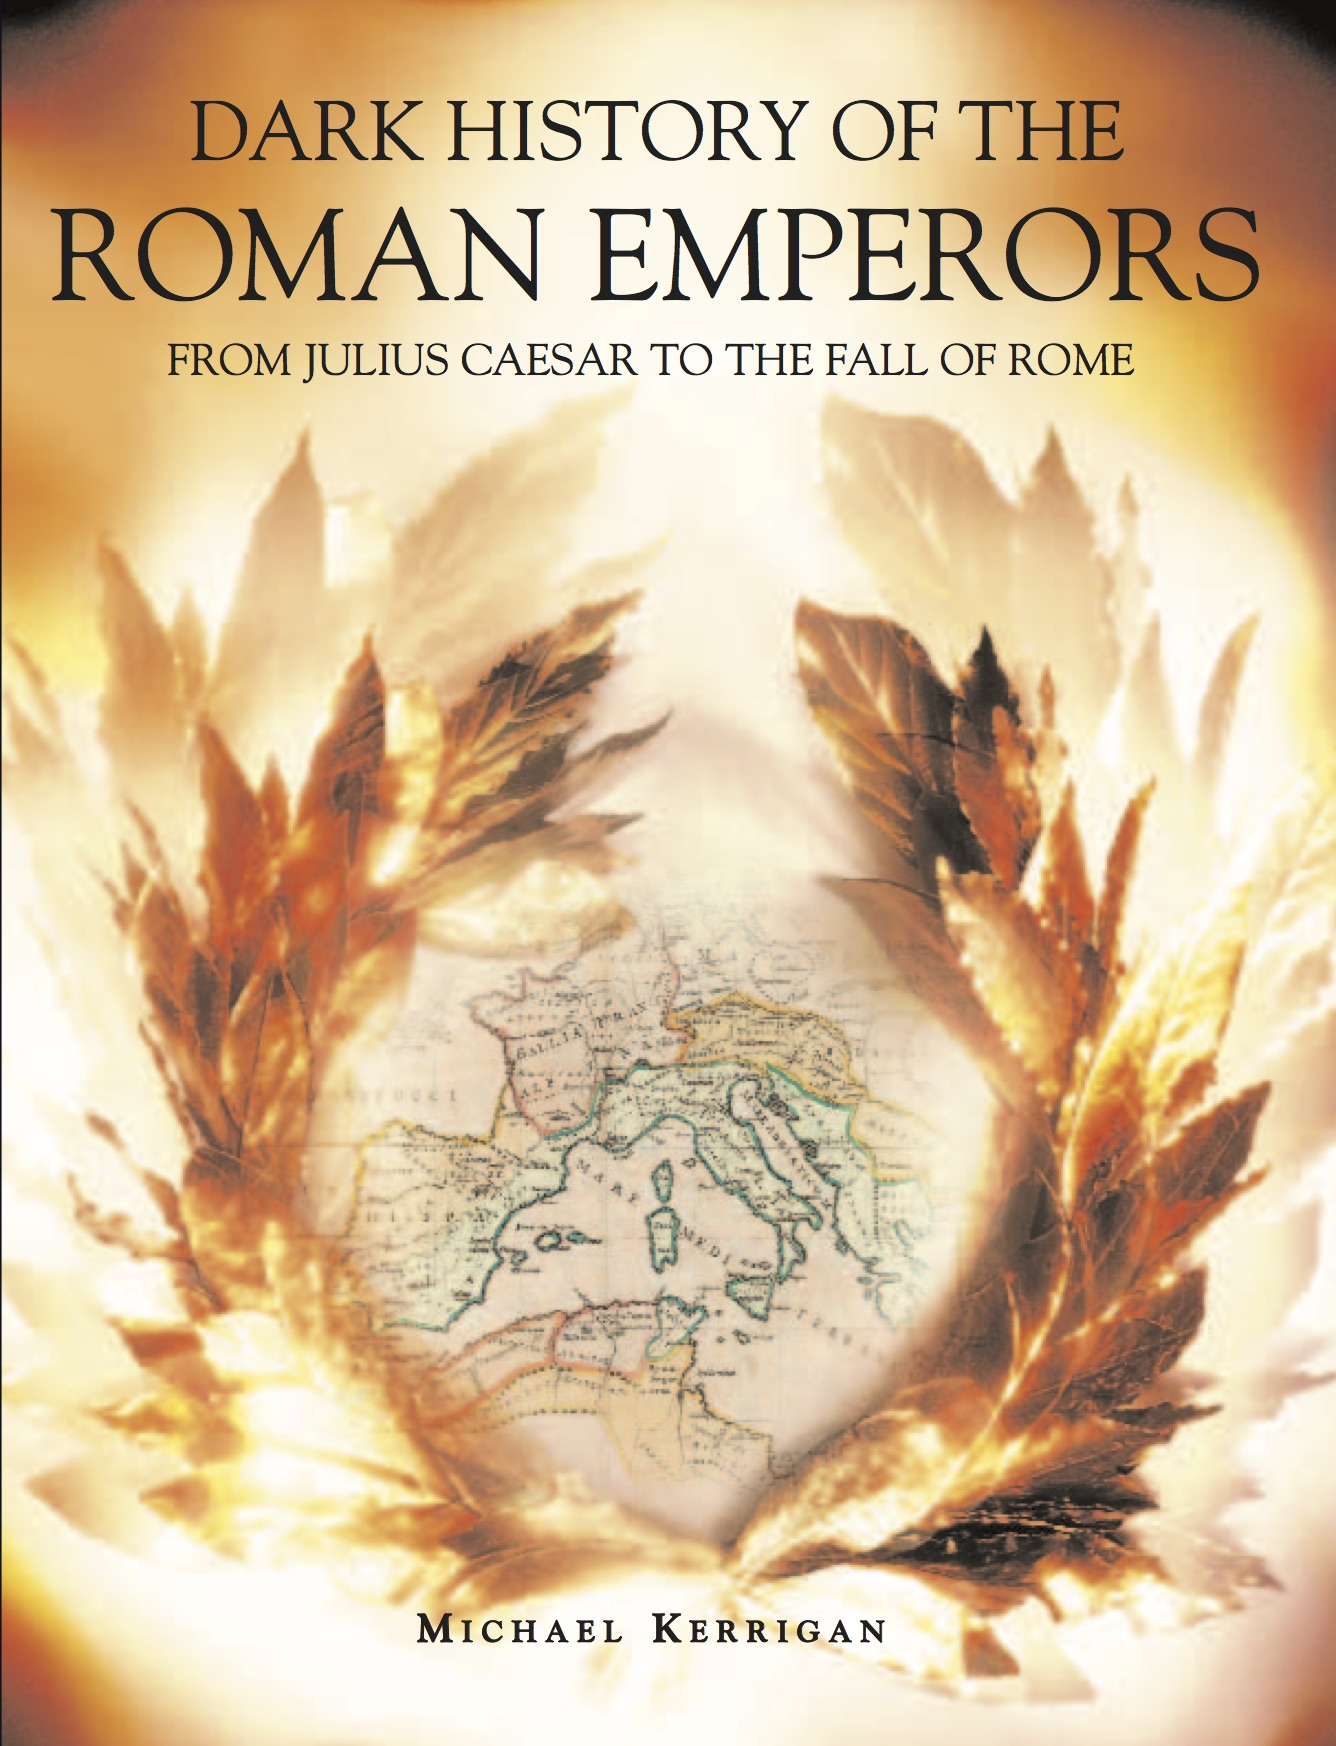 Dark History of the Roman Emperors